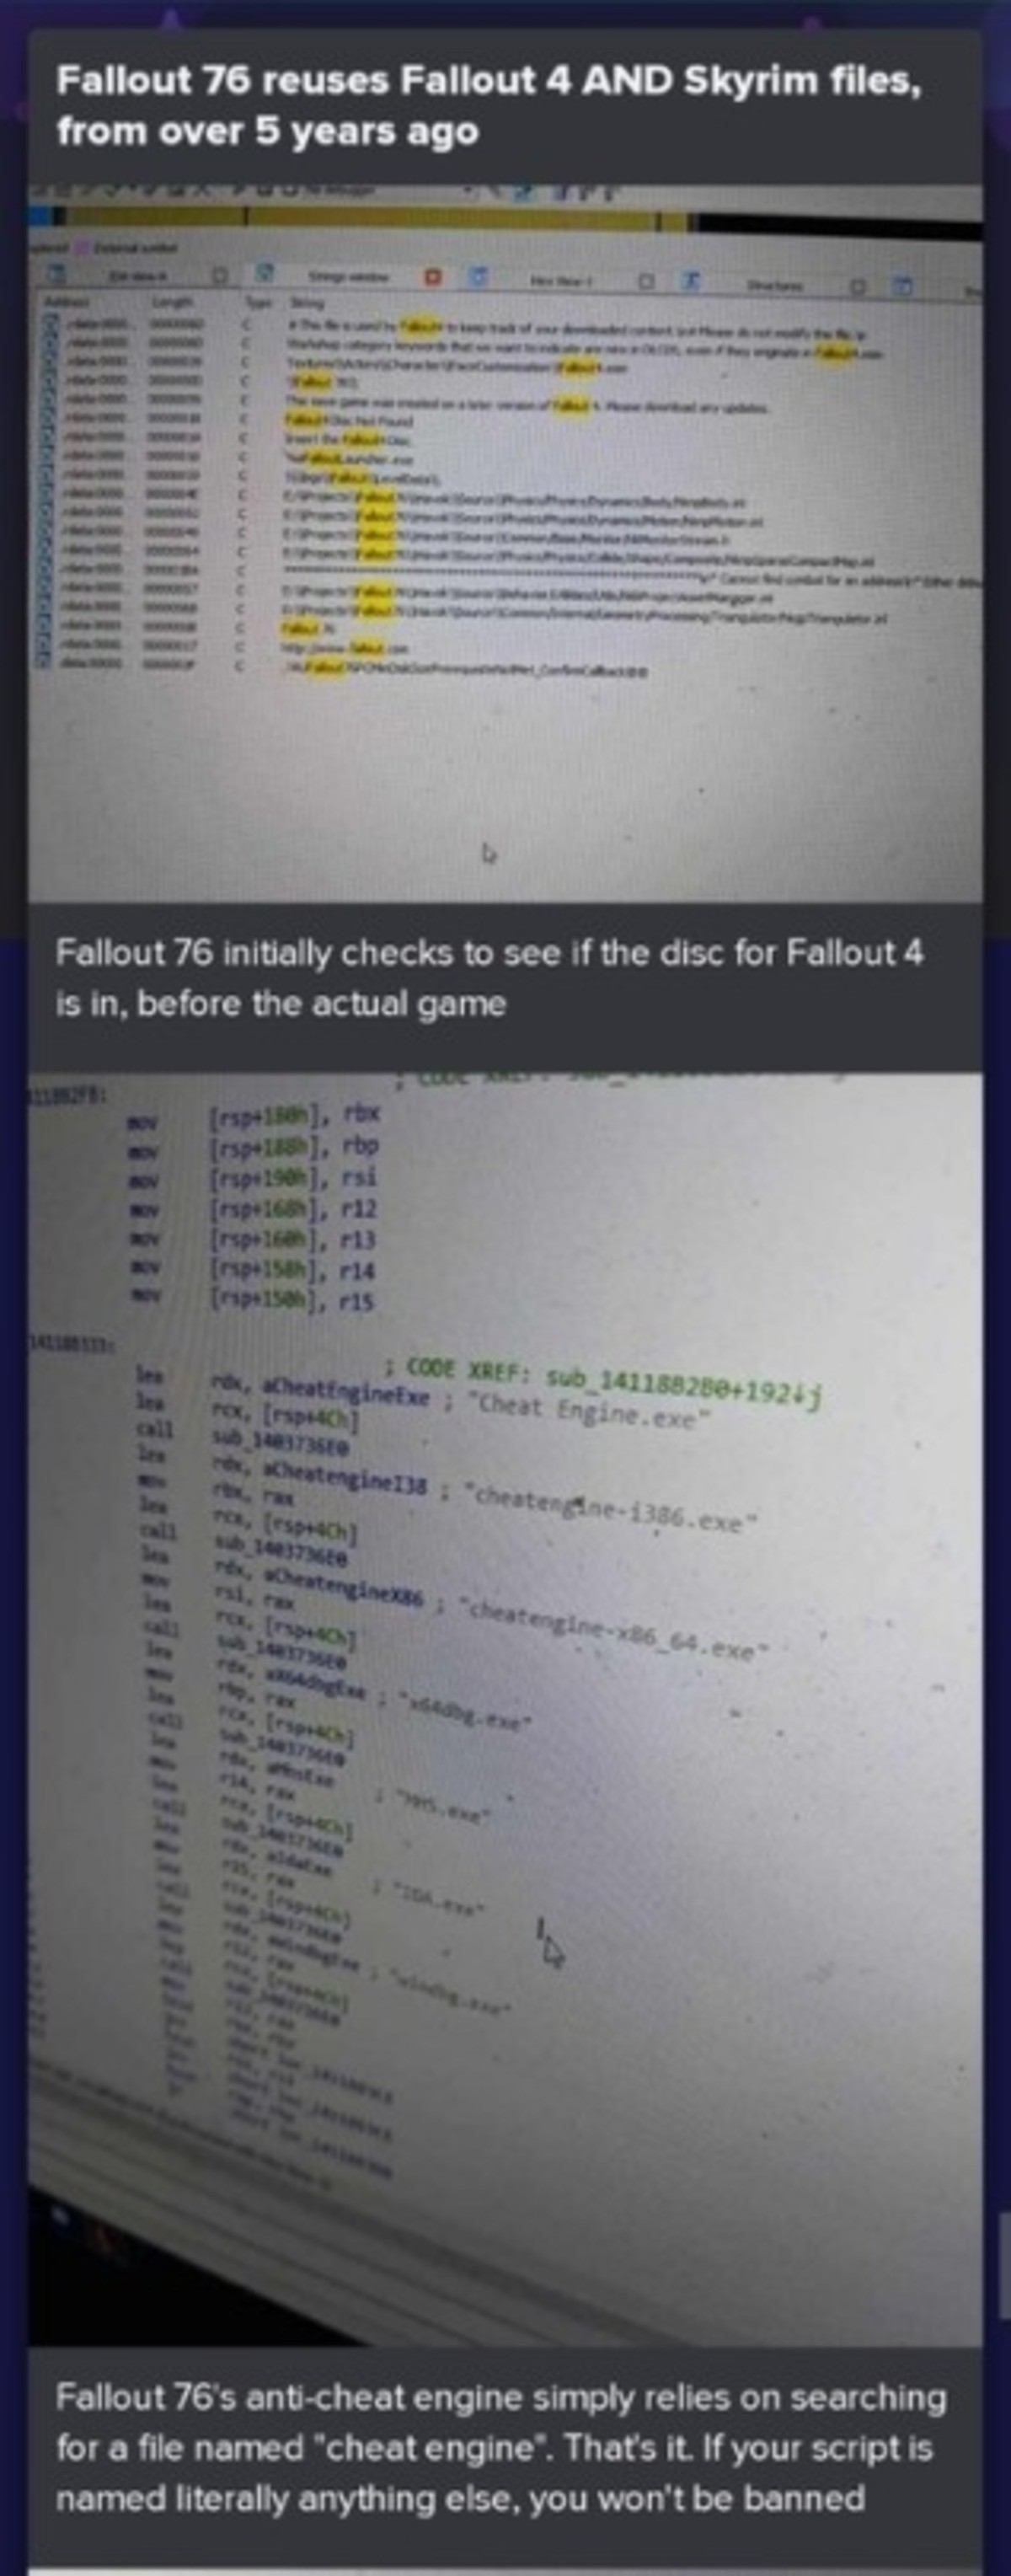 Reused Fallout 4 and Skyrim assets in Fallout 76. .. This is like the 10th time something about 76 using 4 and Skyrim code has popped up today. Give it a rest man.